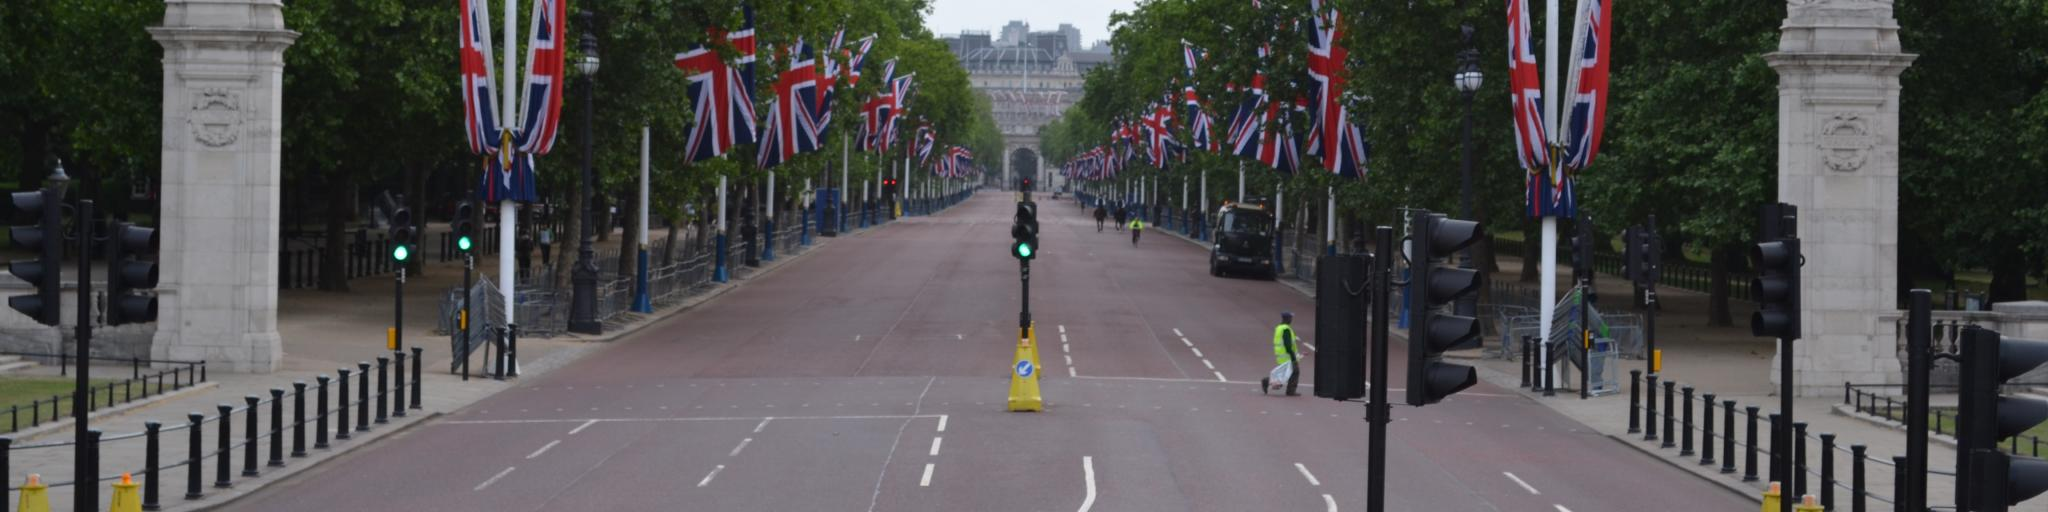 The Mall, which connects Trafalgar Square and Buckingham Palace, is one of the most important streets in London